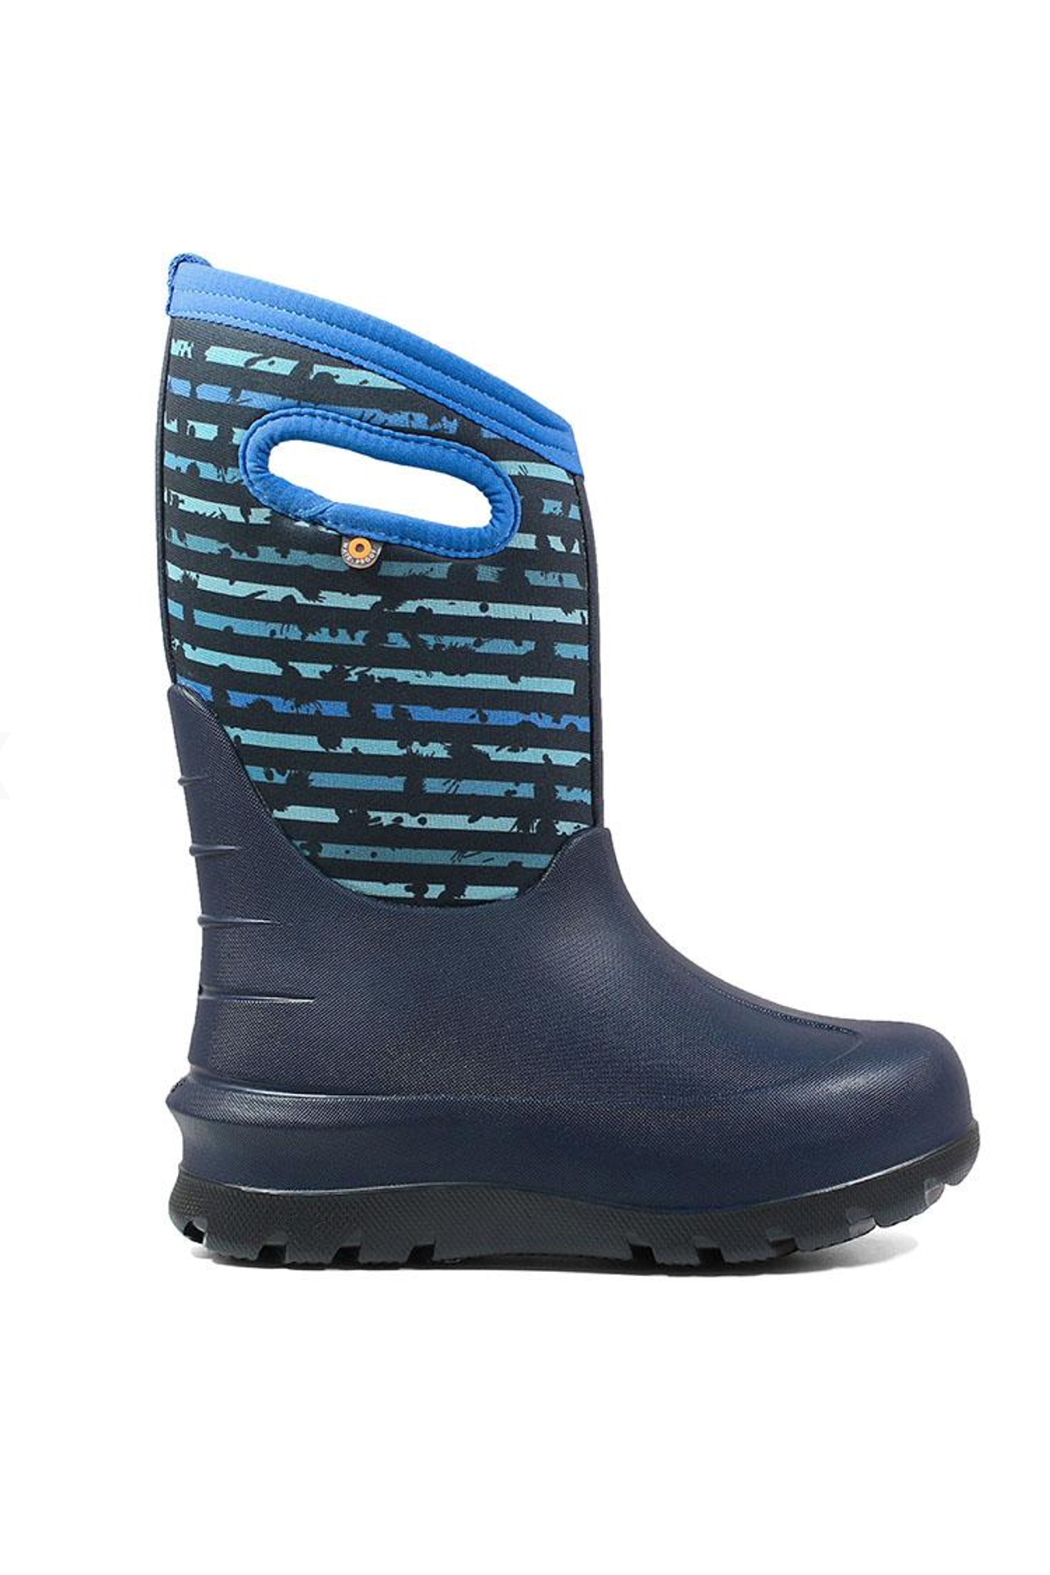 BOGS Neo-Classic Stripe Kids' Insulated Boots - Main Image